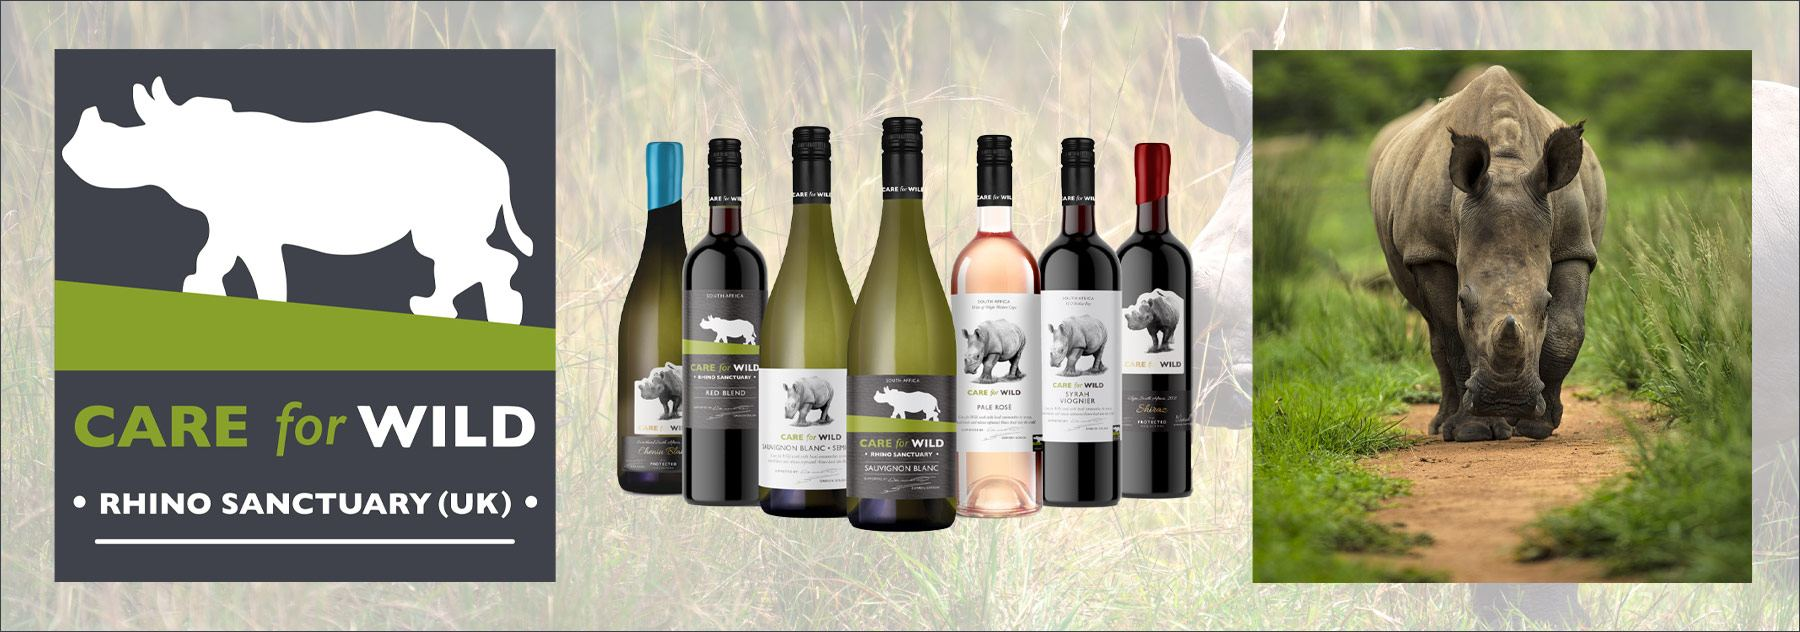 Care for Wild Mixed Case of Wines